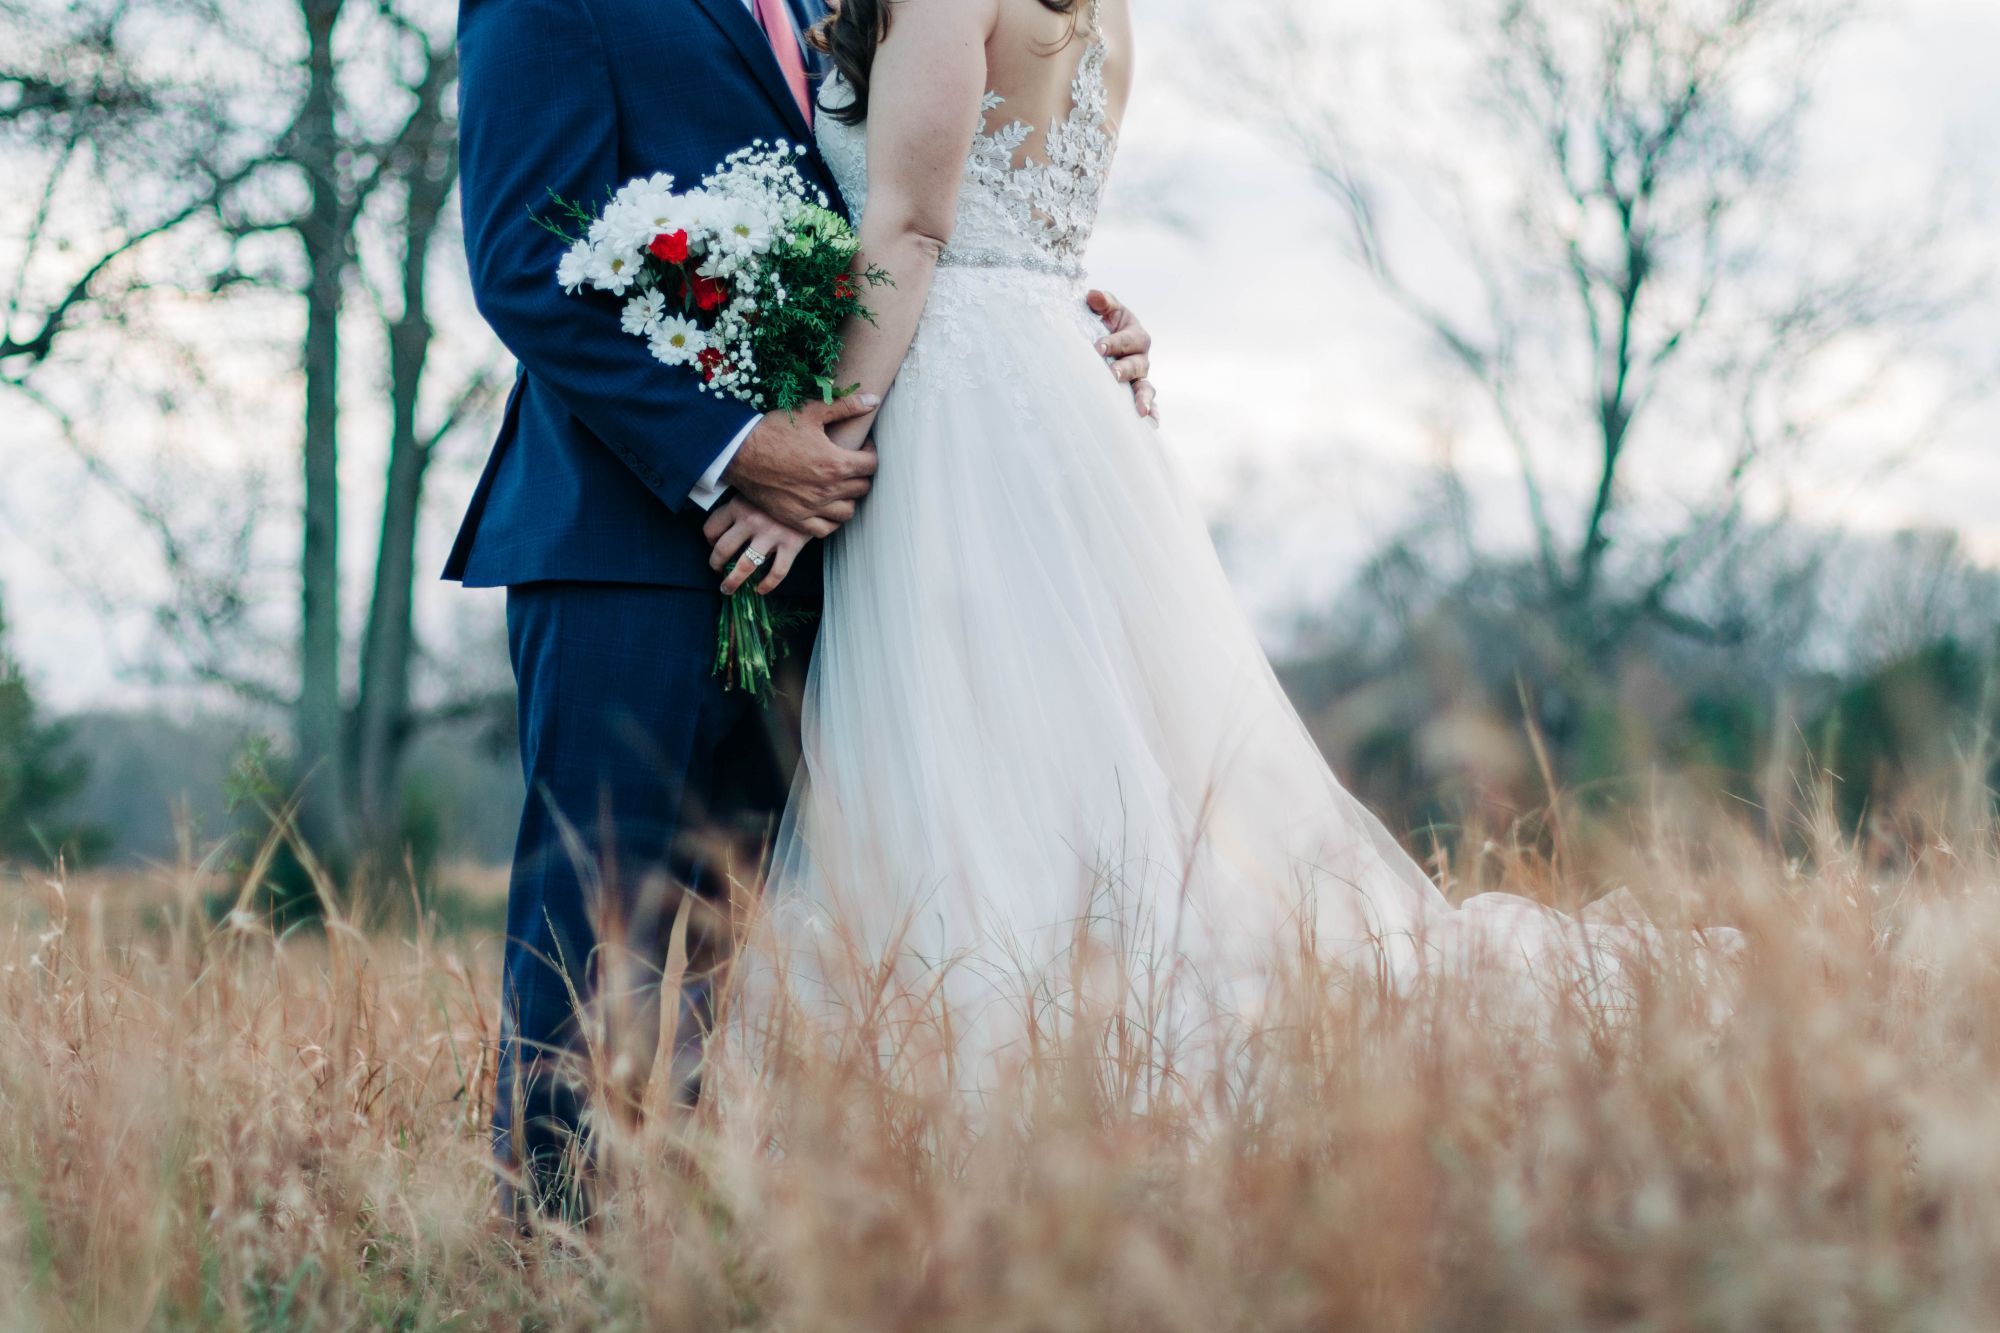 Need to Postpone a Wedding? These Expert Tips Will Guide You